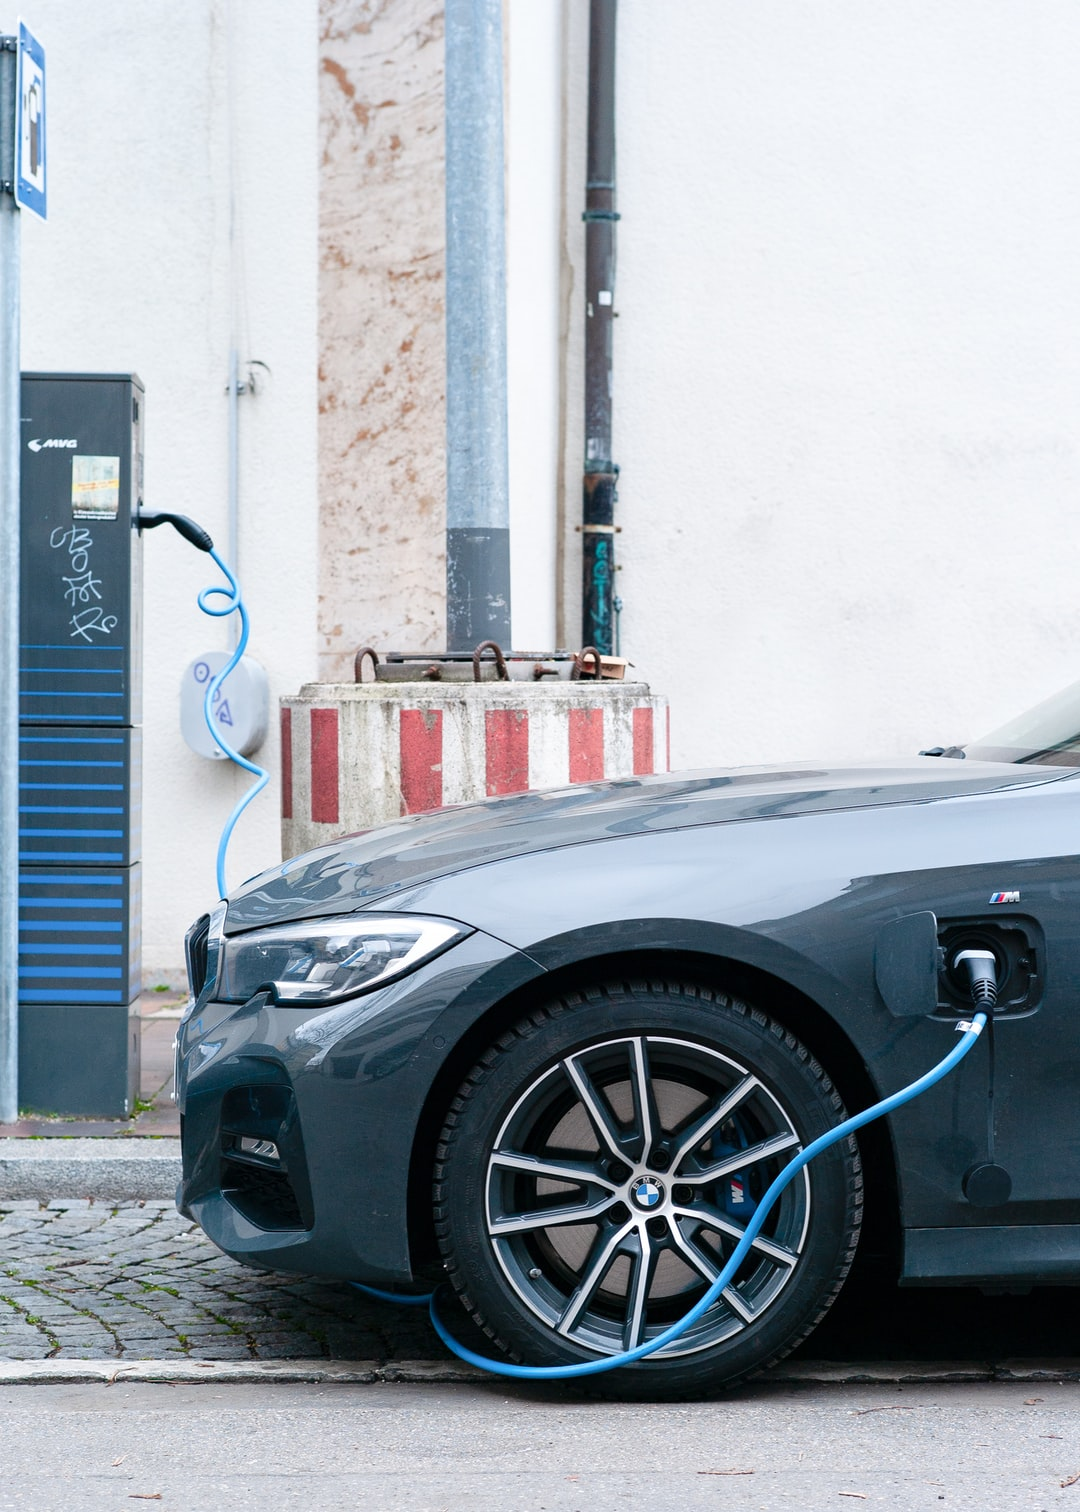 BMW electric hybrid vehicle  on charging station